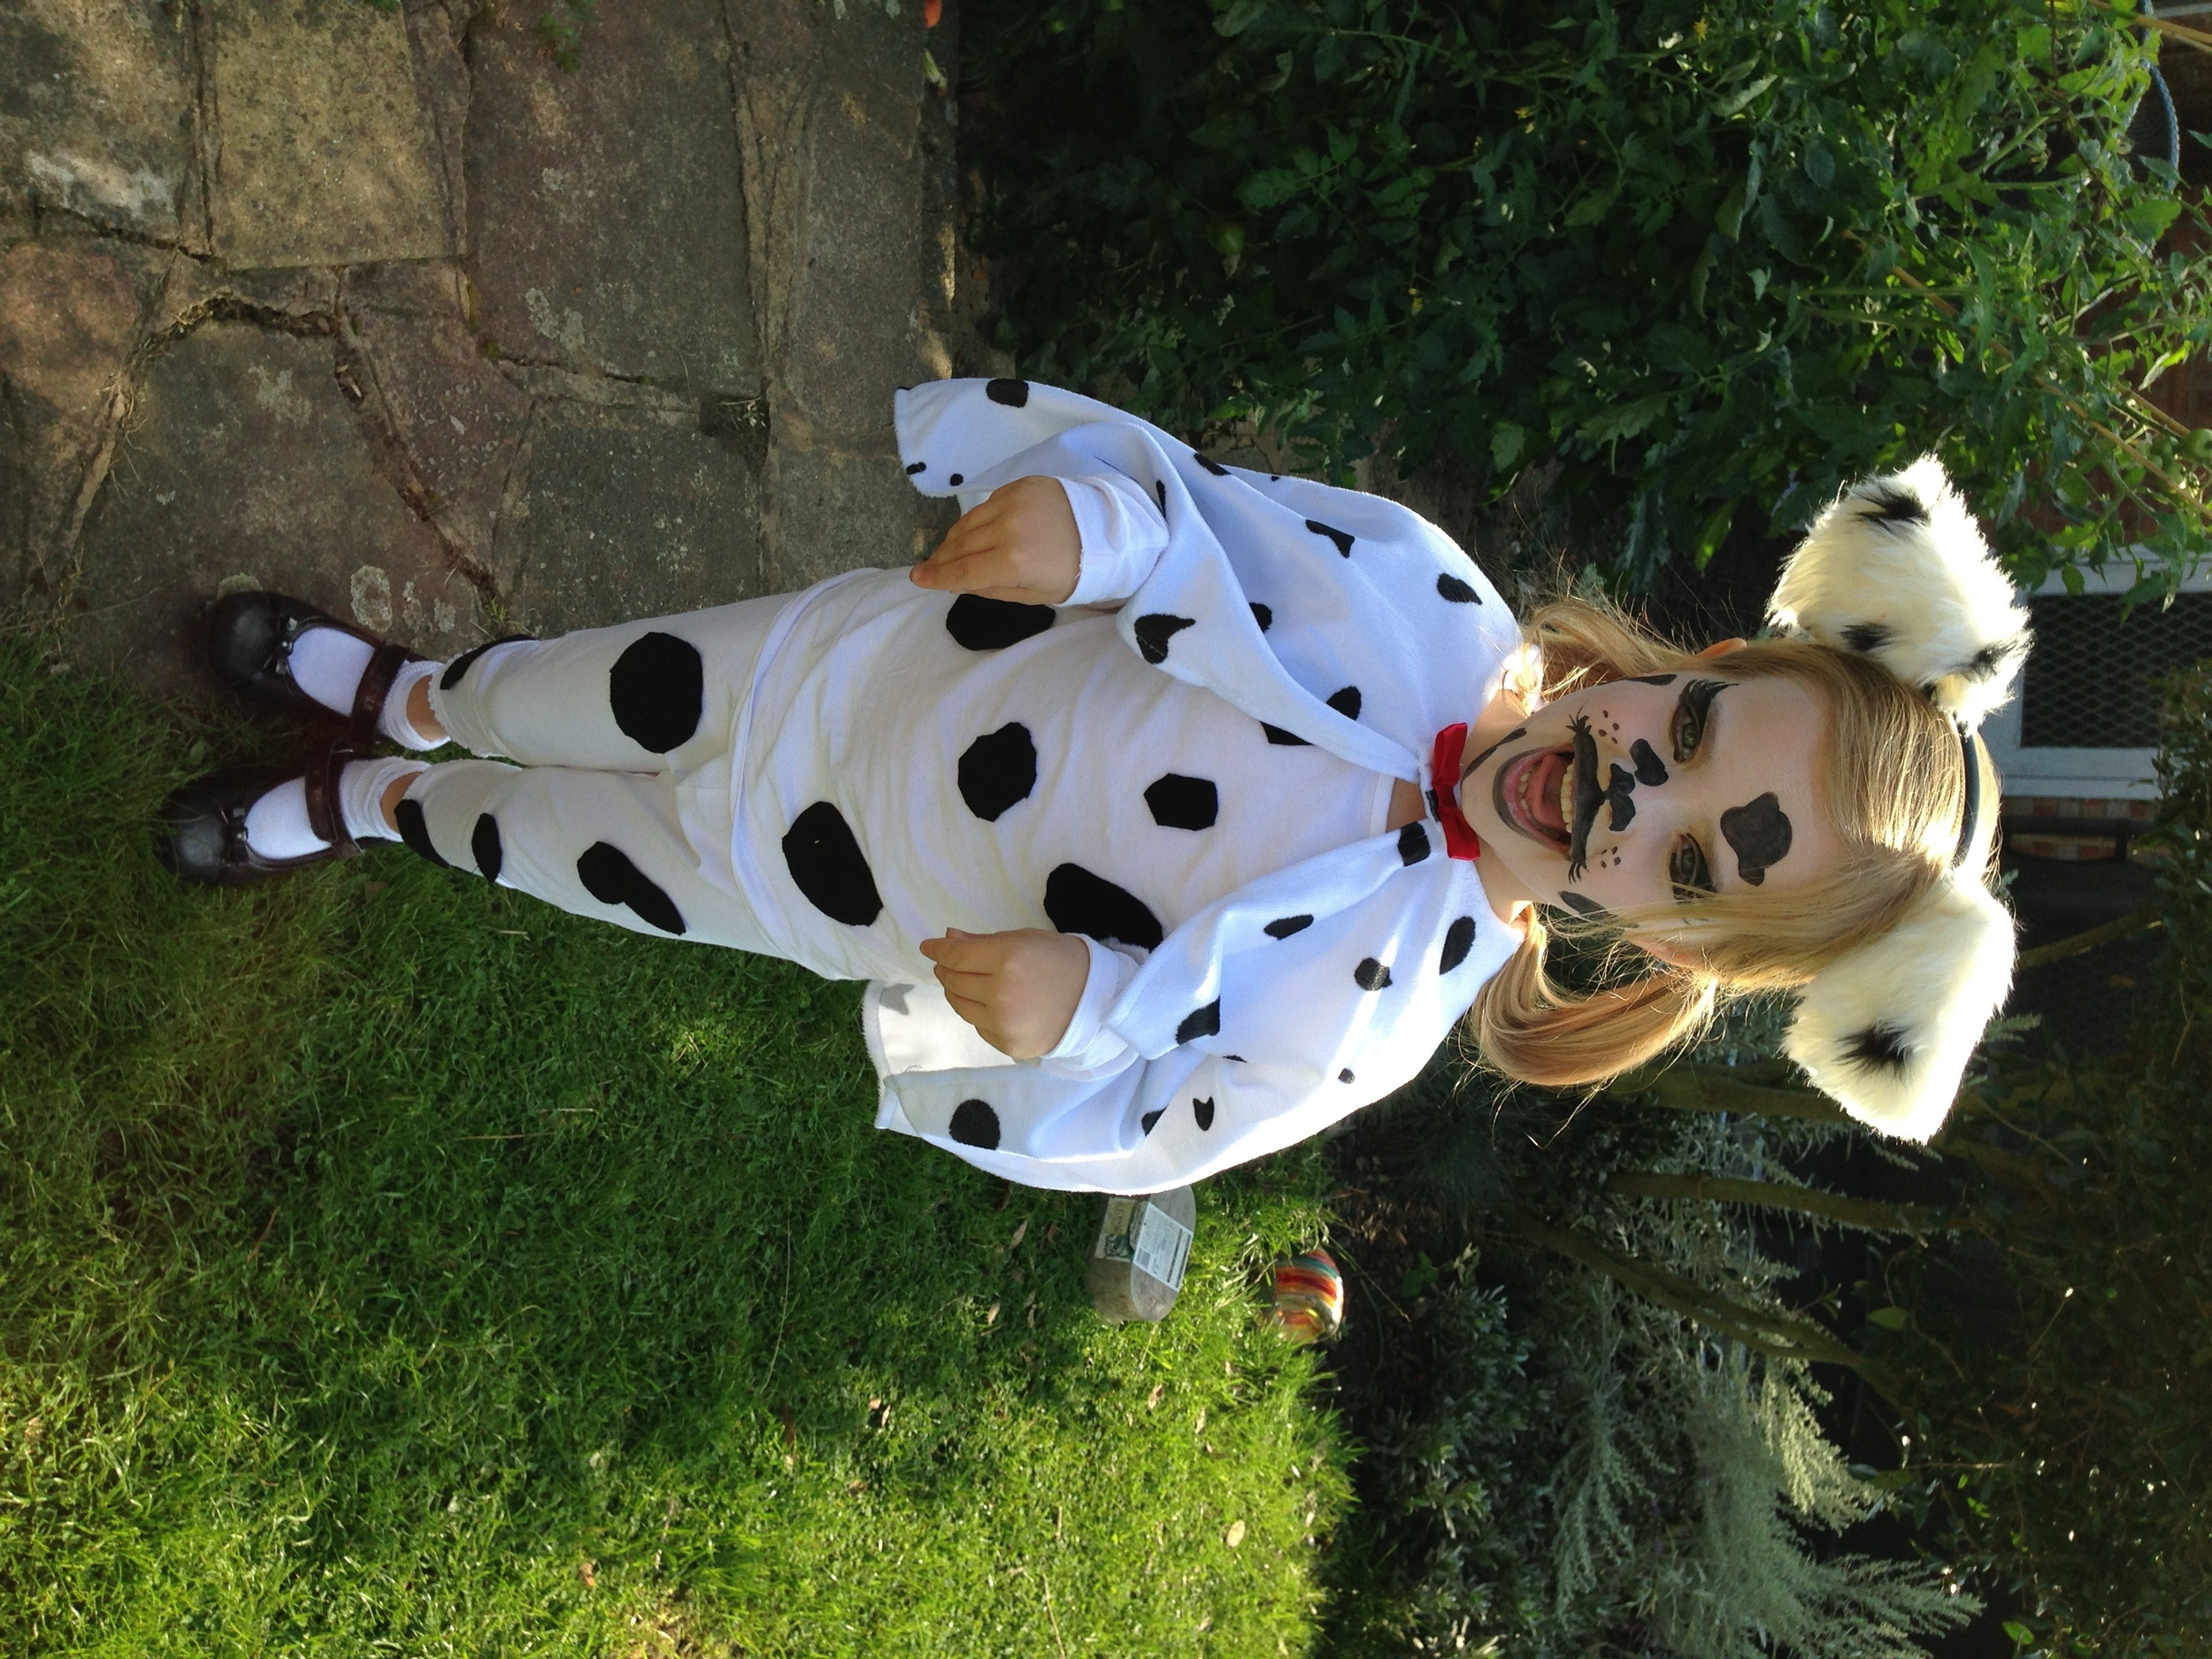 Making a Child's Dalmatian Costume and Makeup